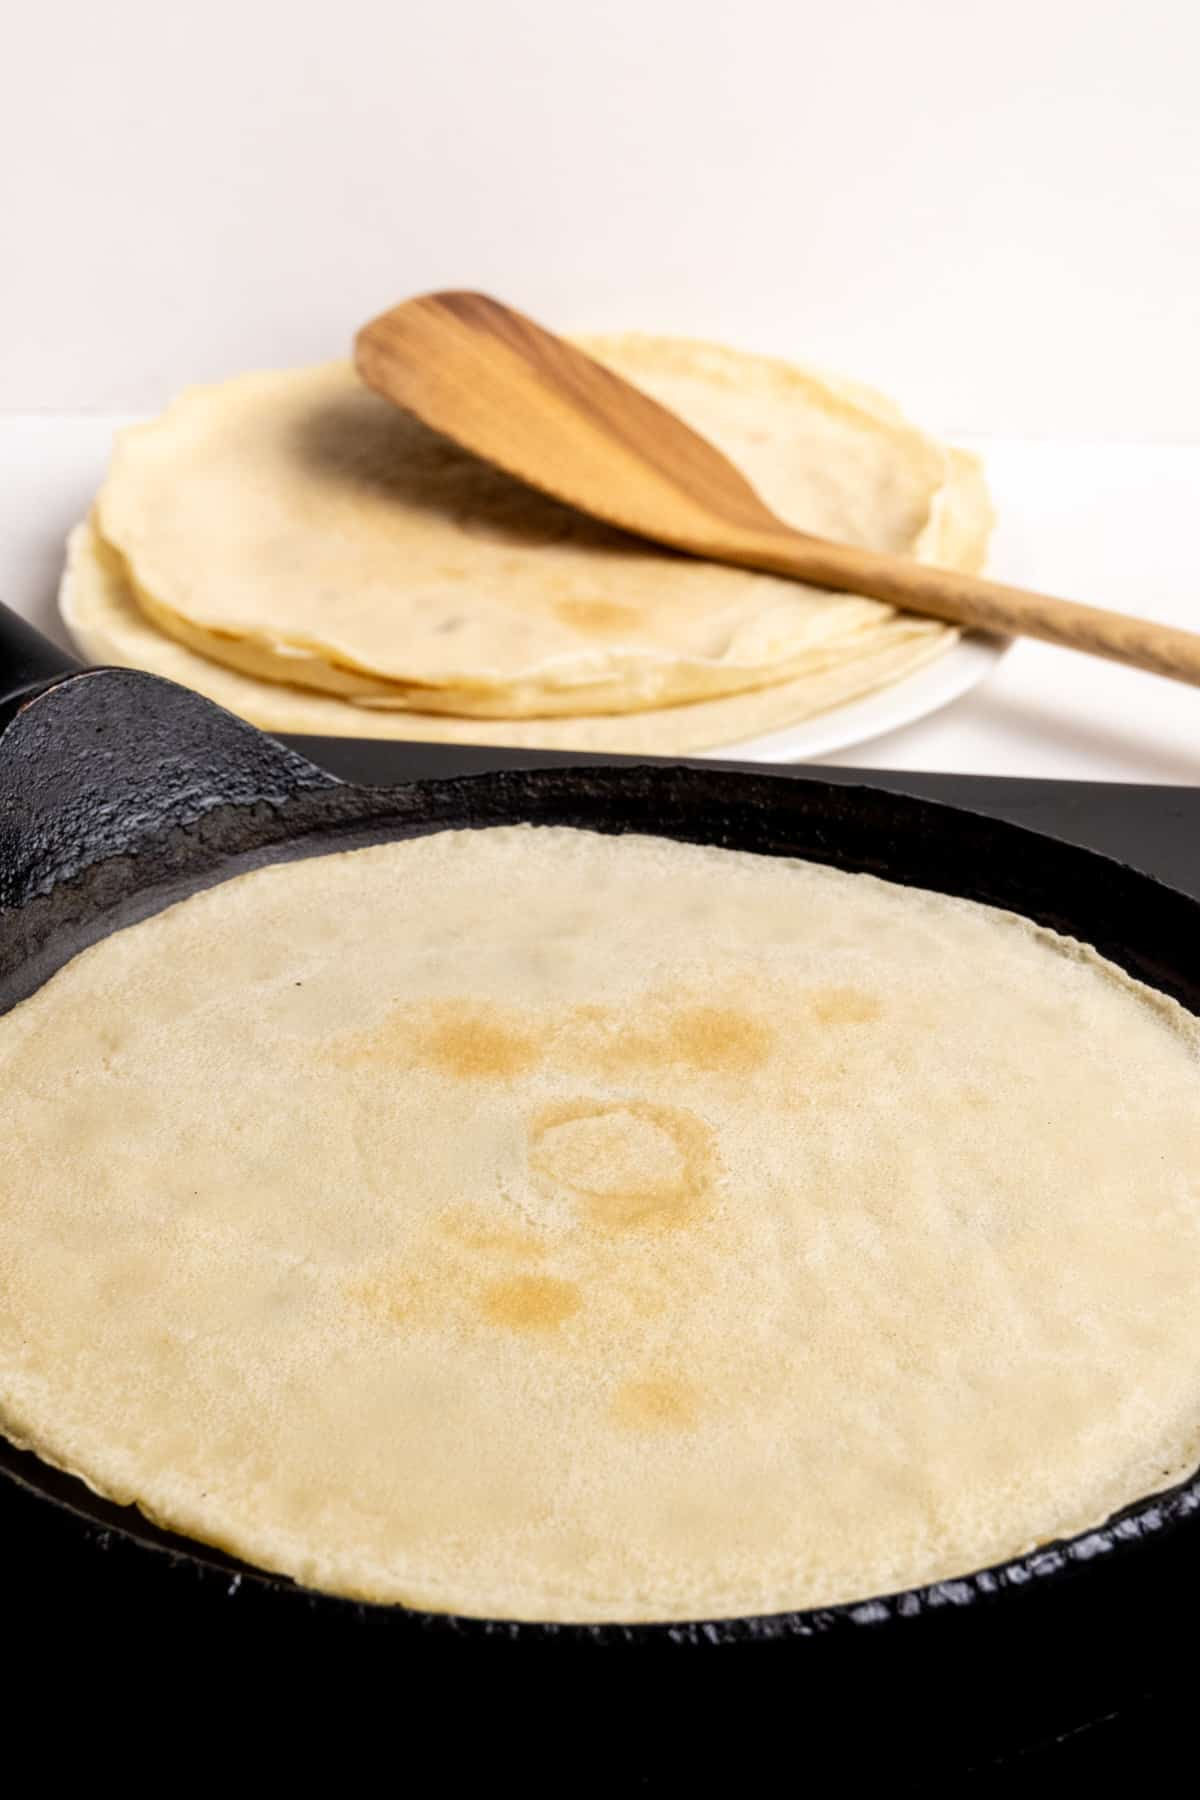 Cooking a crepe in a pan, with a stack of cooked crepes and a wooden spatula in the background.